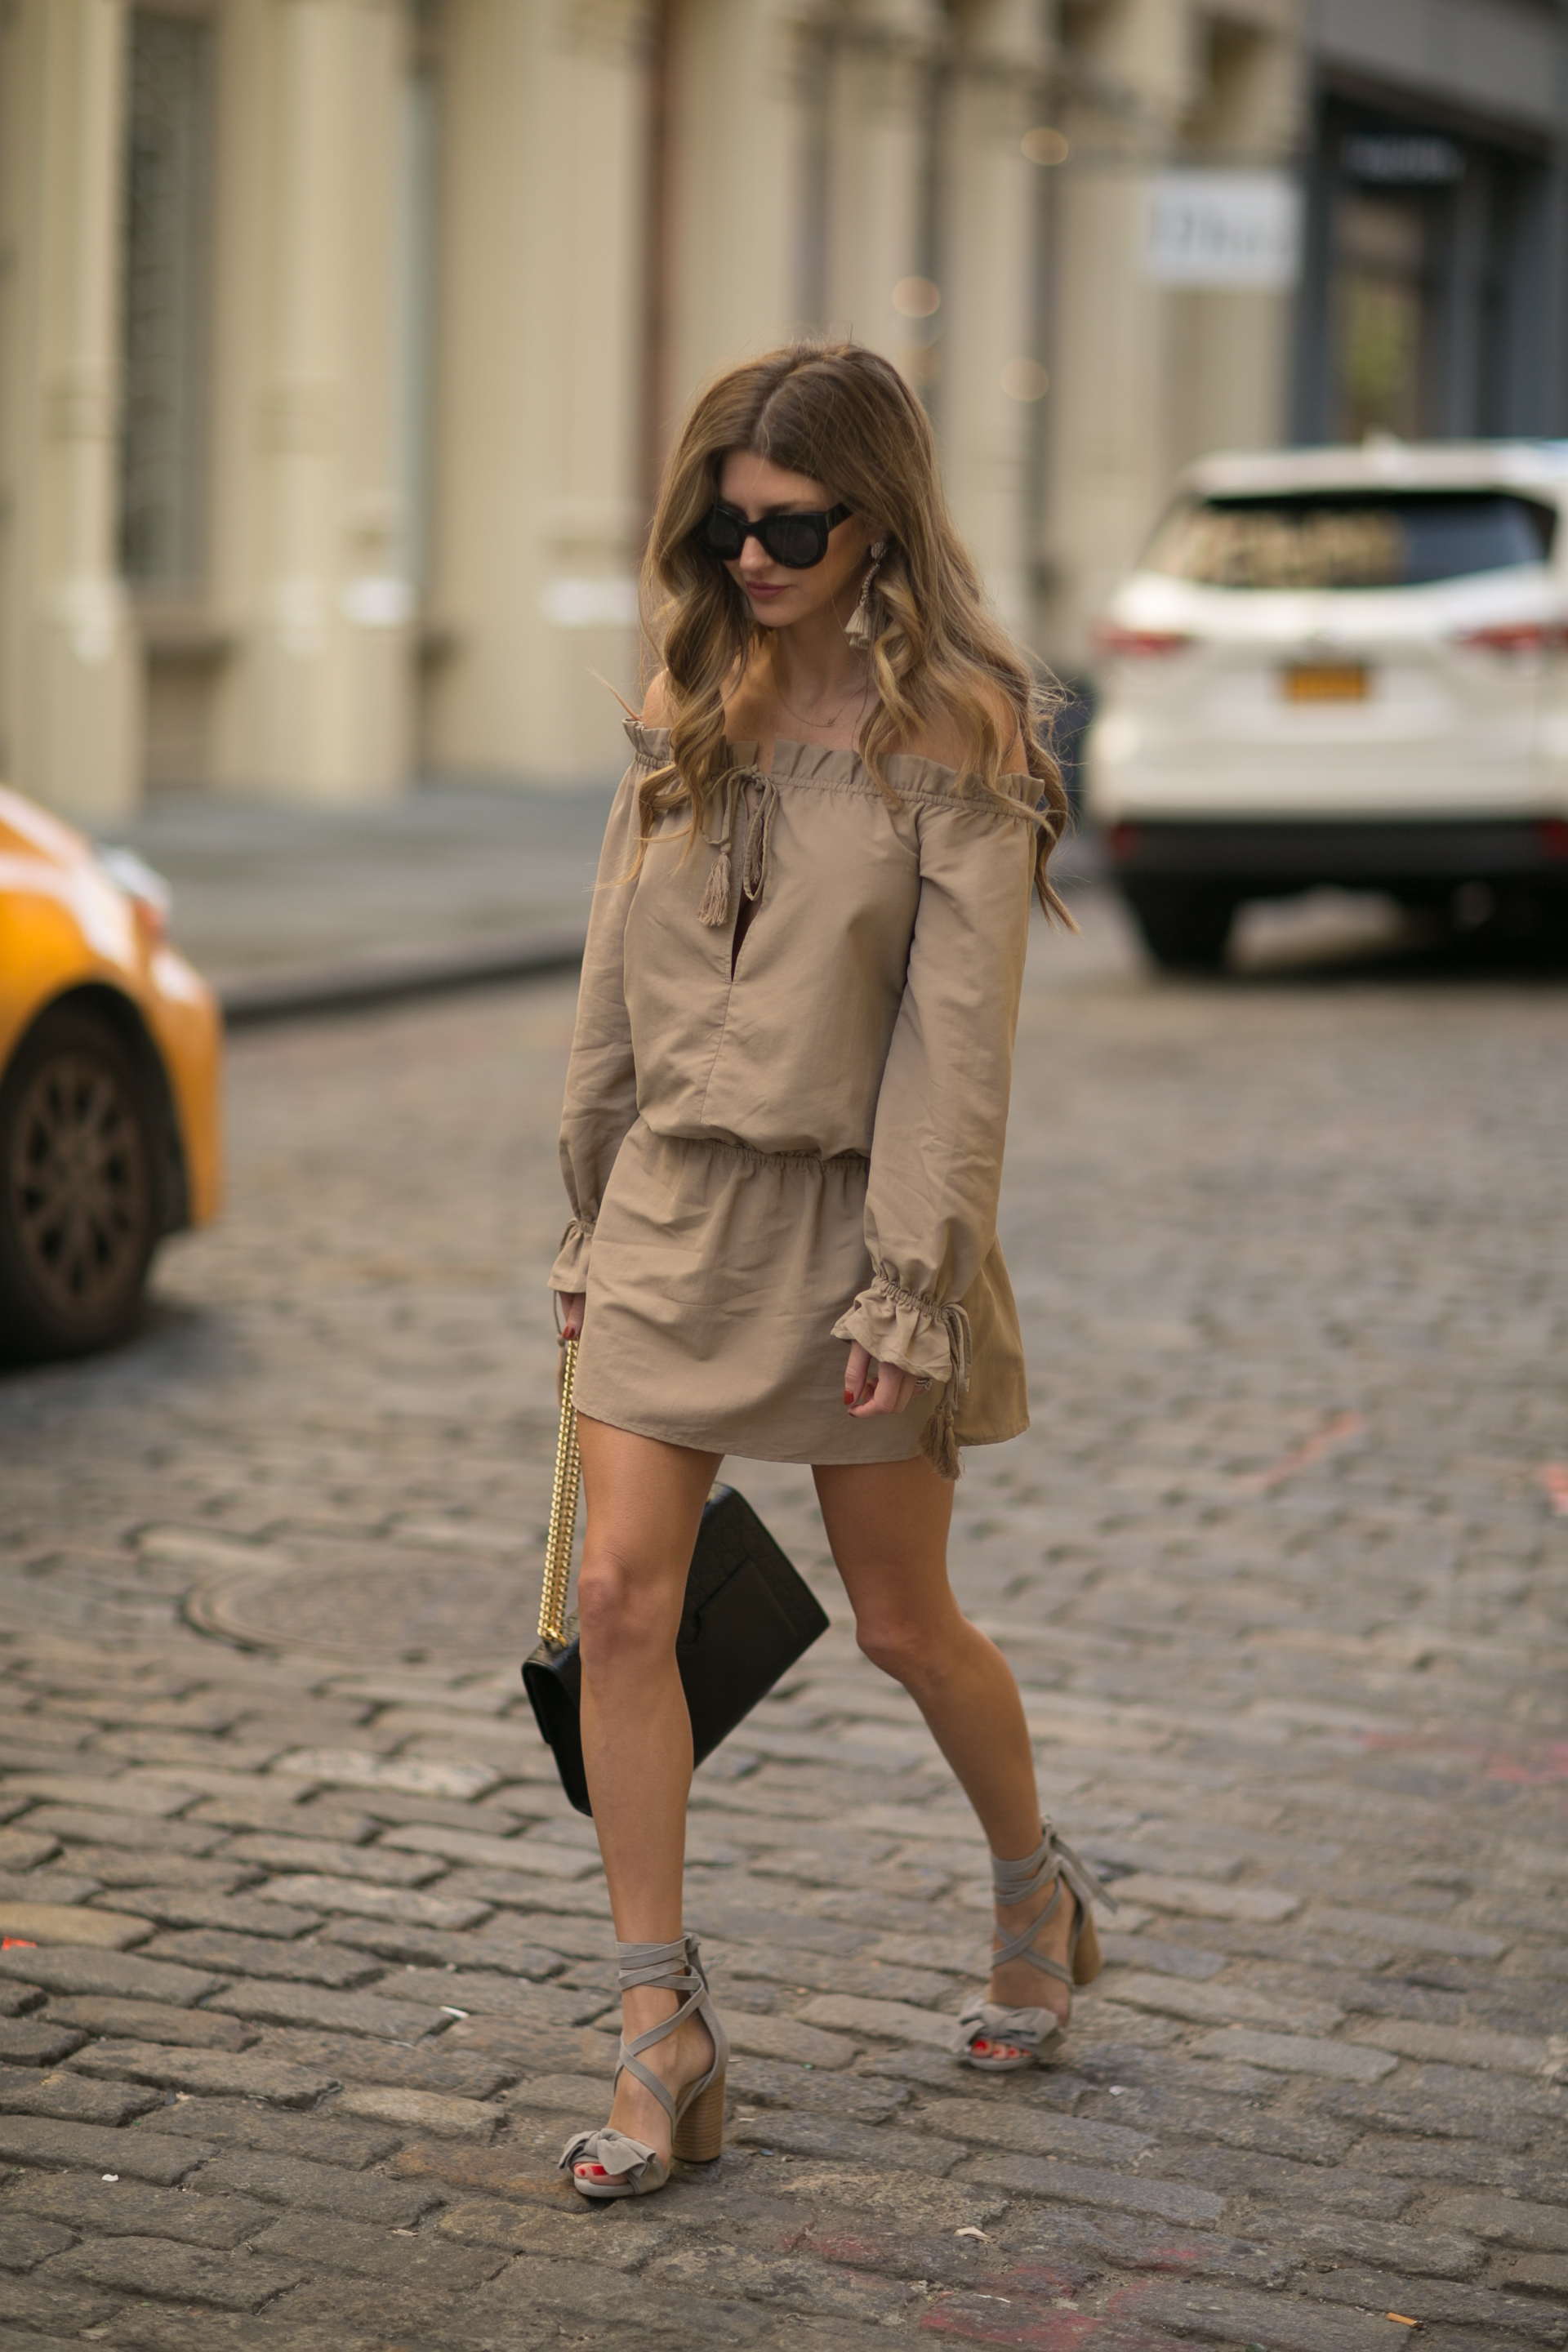 Fashion blogger in New York during Fashion week wearing Revolve Clothing